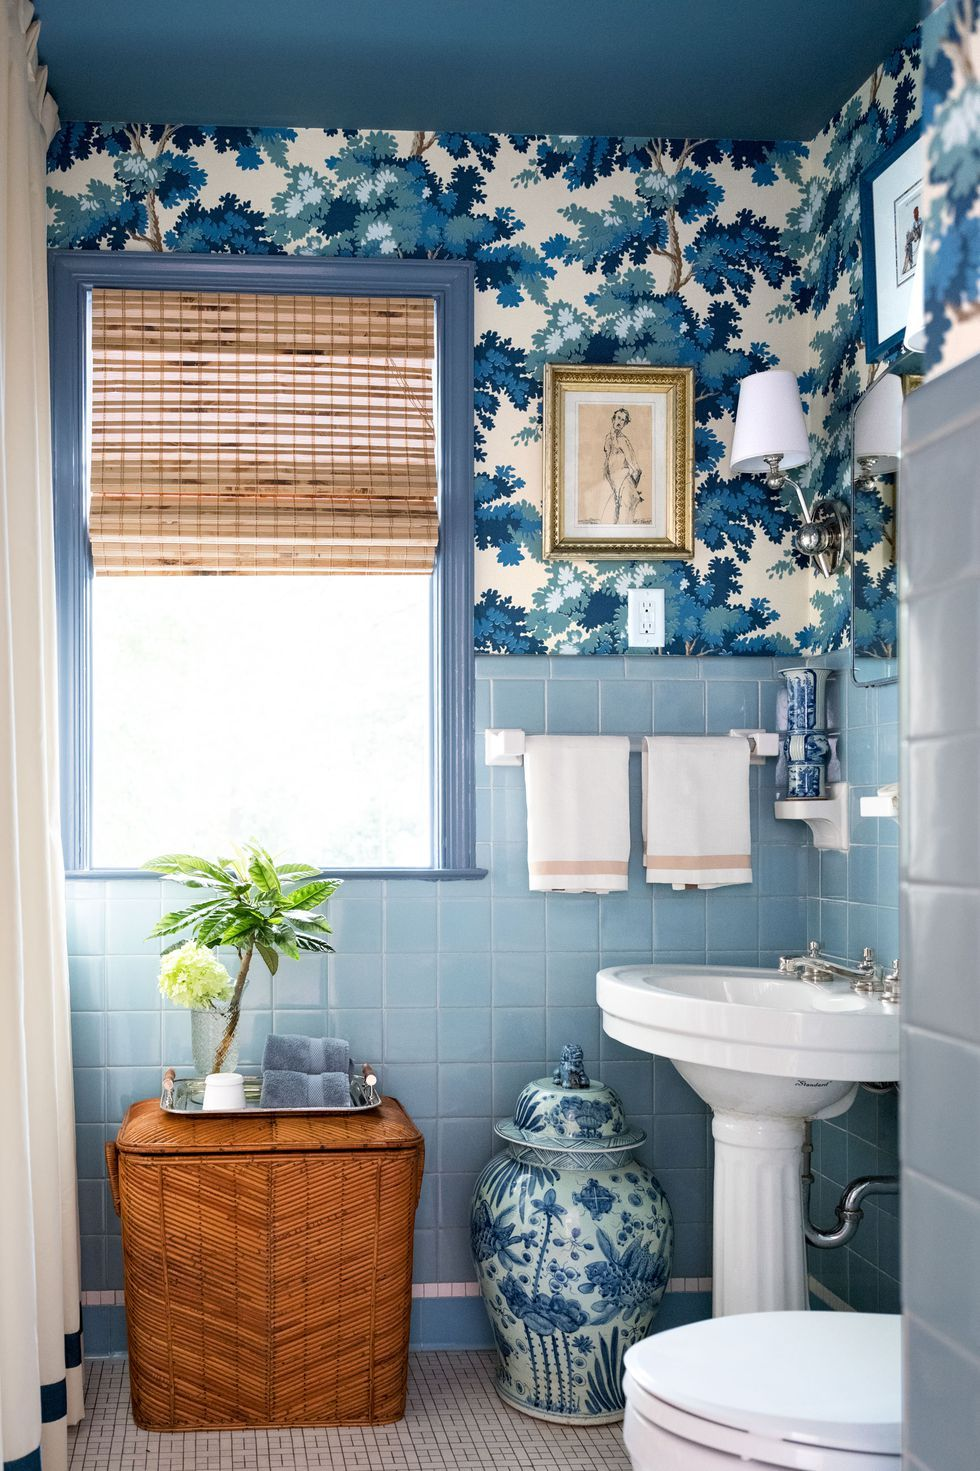 6 Best Bathroom Designs - Photos of Beautiful Bathroom Ideas to Try